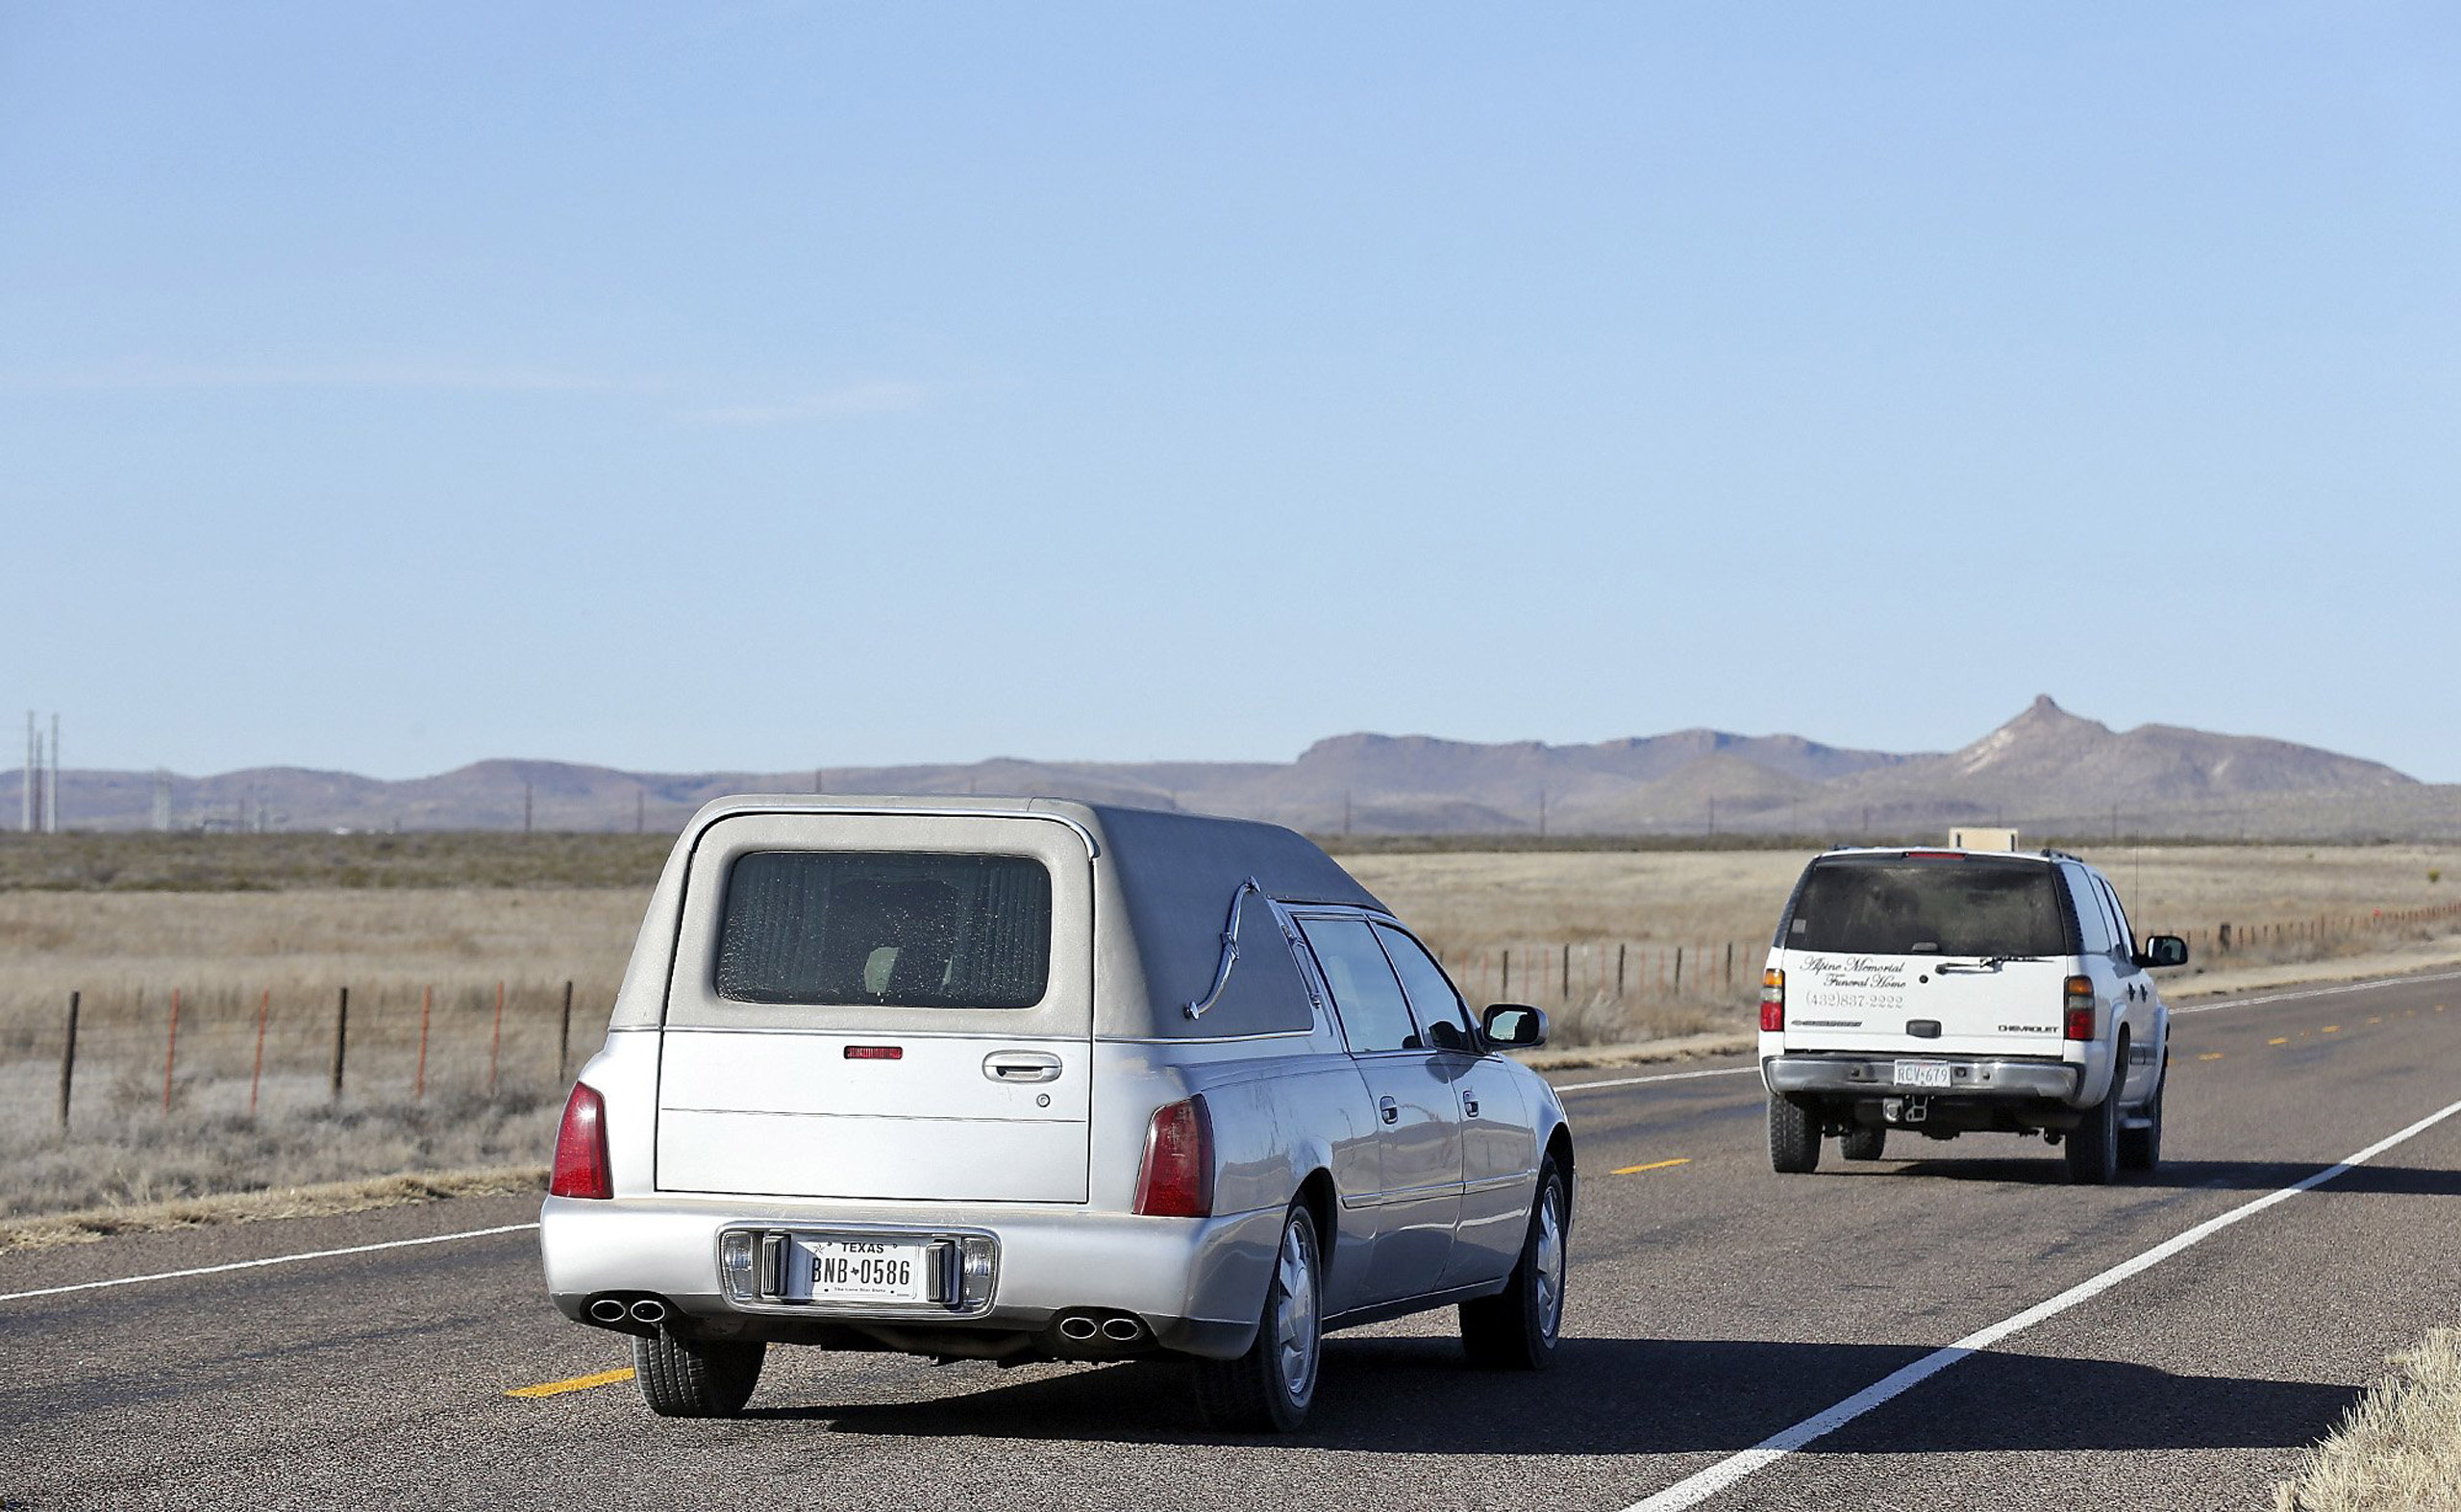 An SUV and hearse from Alpine Memorial Funeral Home transporting the body of late Supreme Court Justice Antonin Scalia leave Cibolo Creek Ranch in Shafter, Texas, on Feb. 13, 2016.